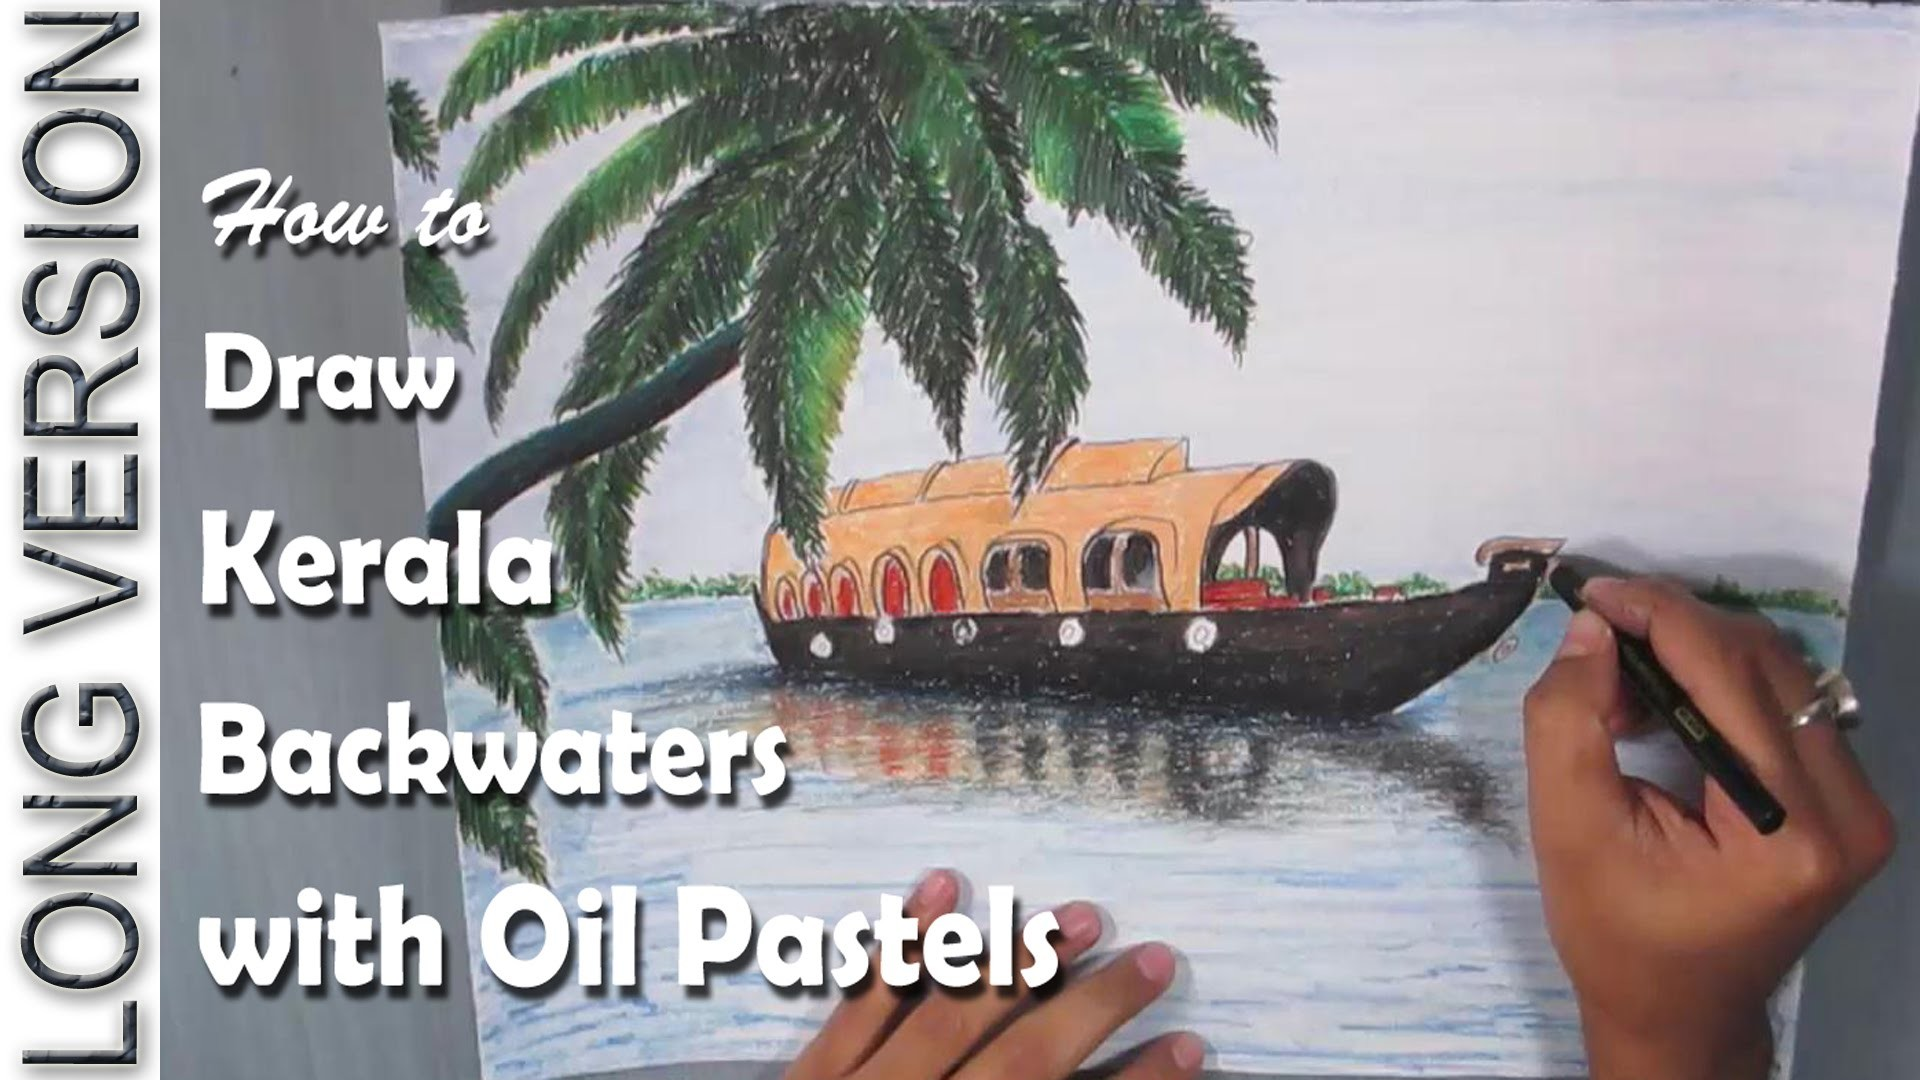 How to Draw the backwaters of Kerala with Oil Pastel [LONG VERSION]